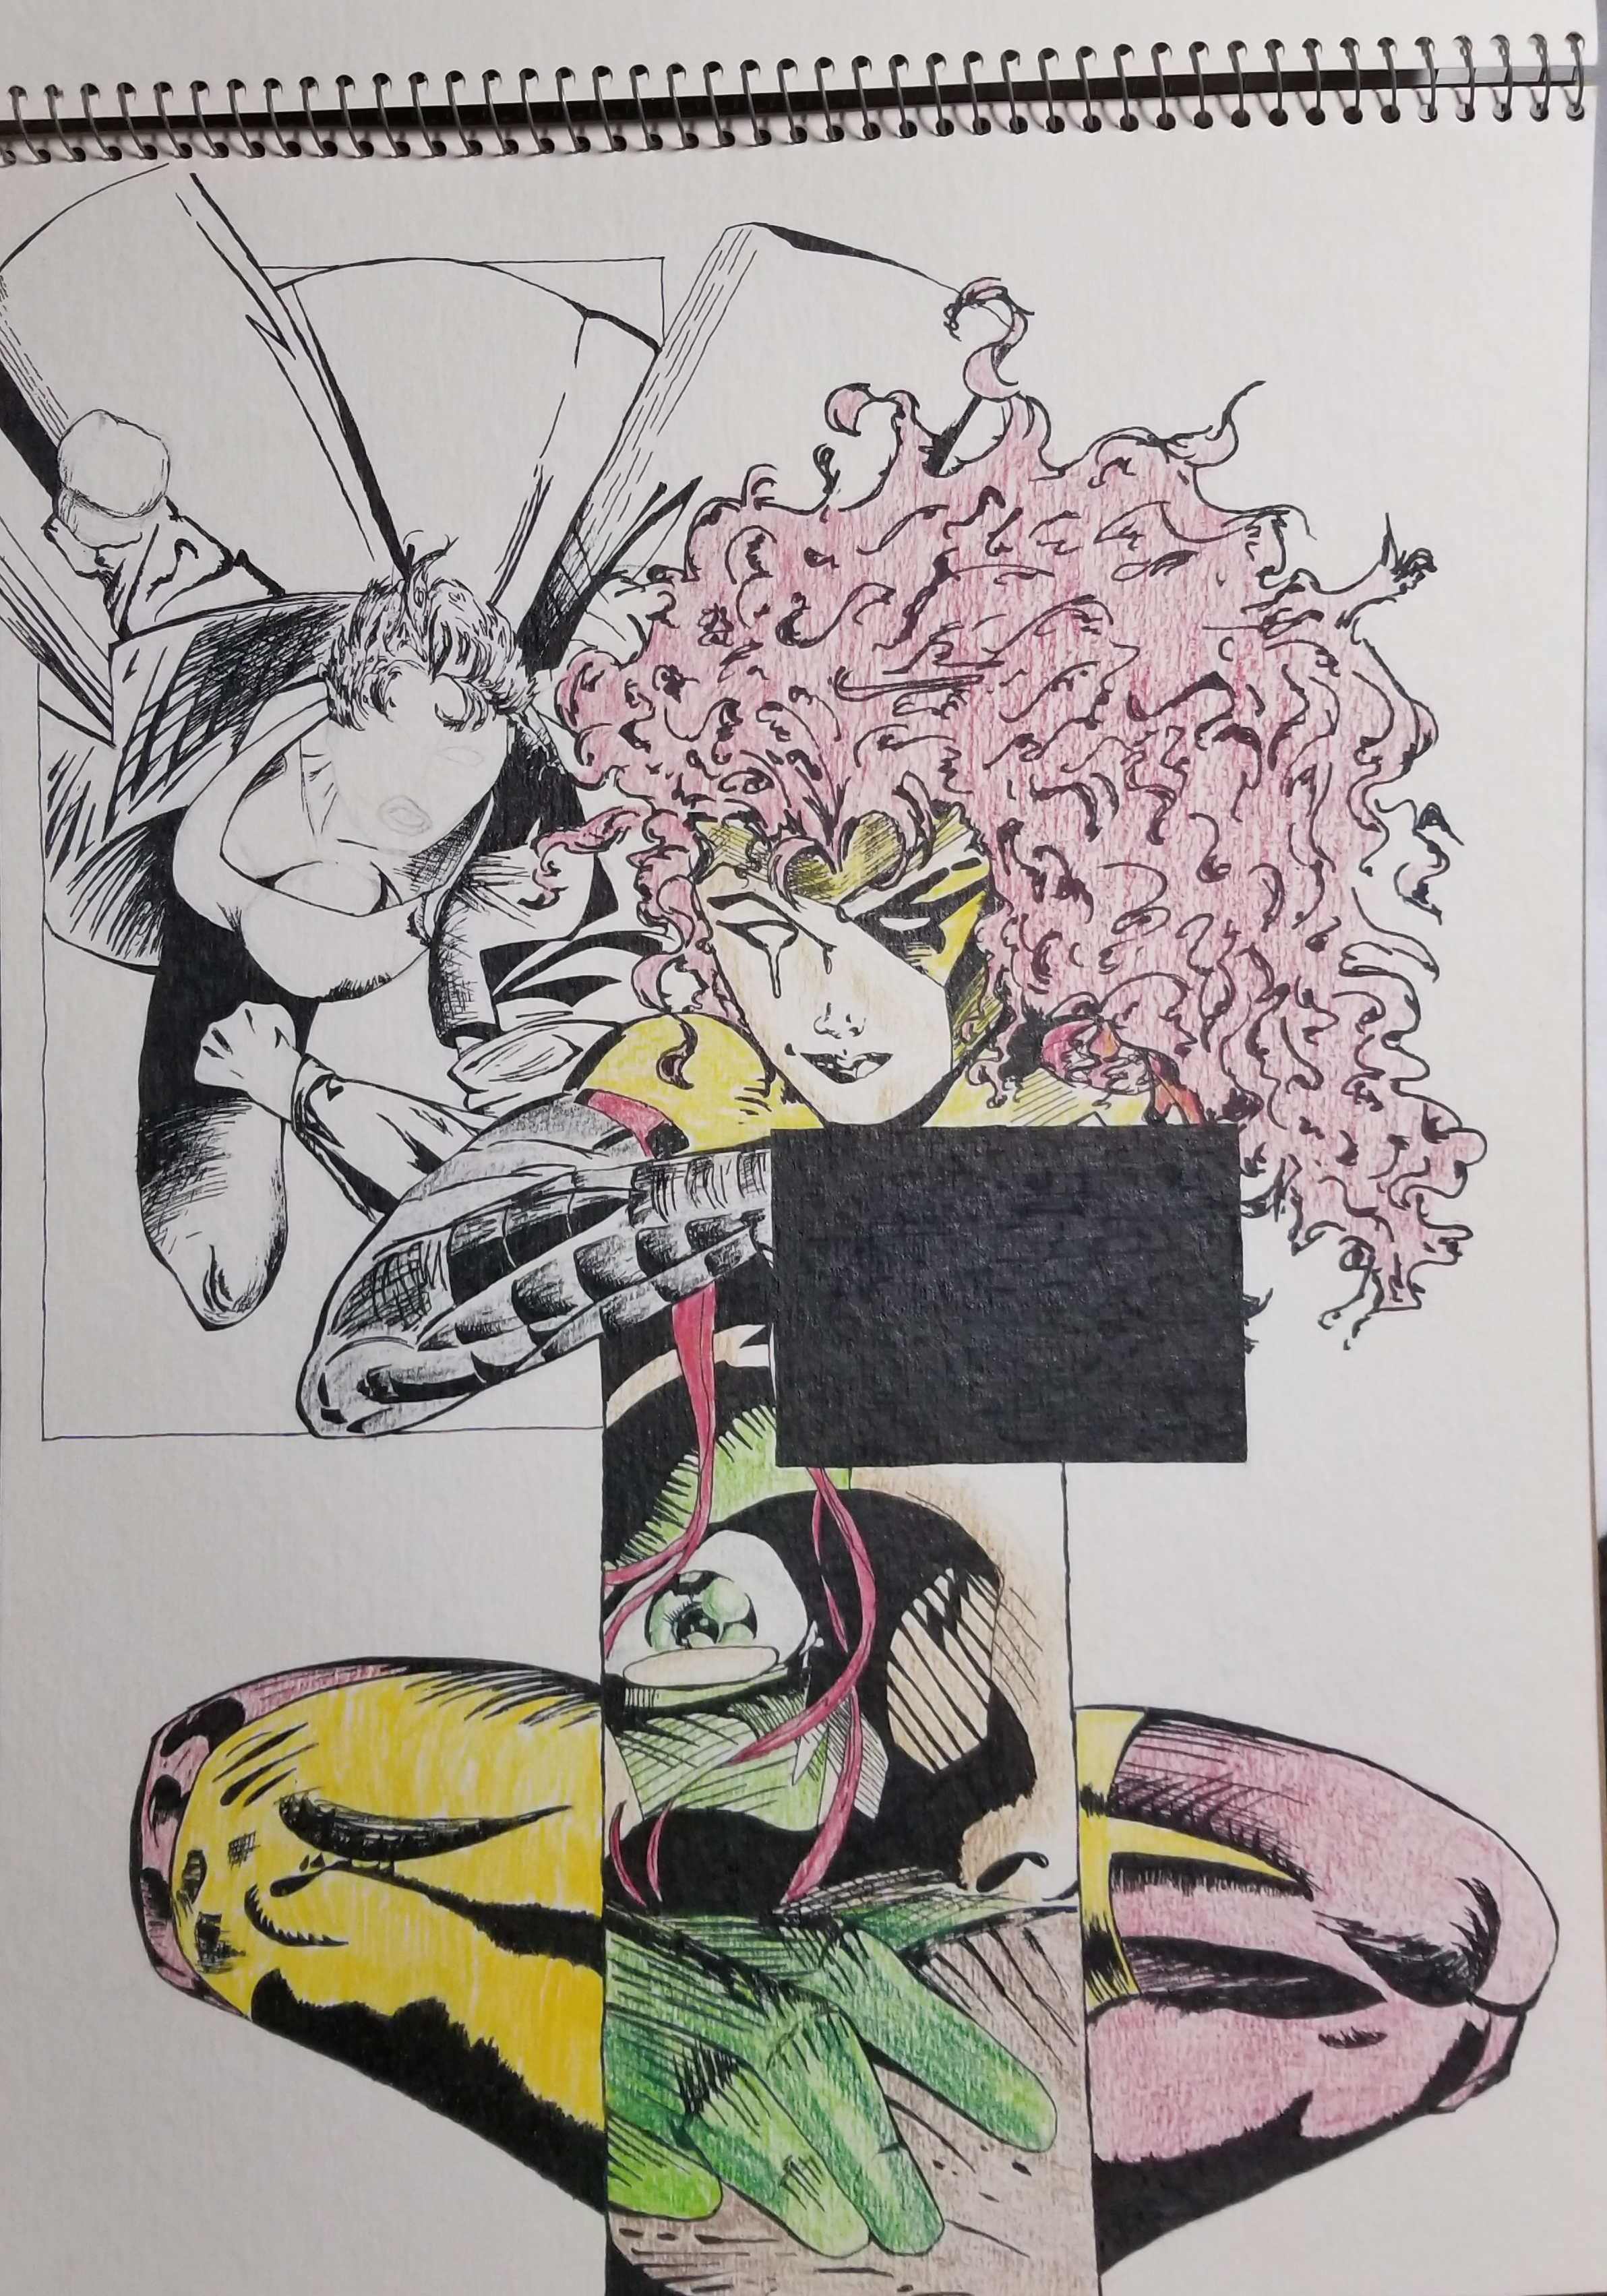 1993. Colored pencil and ink